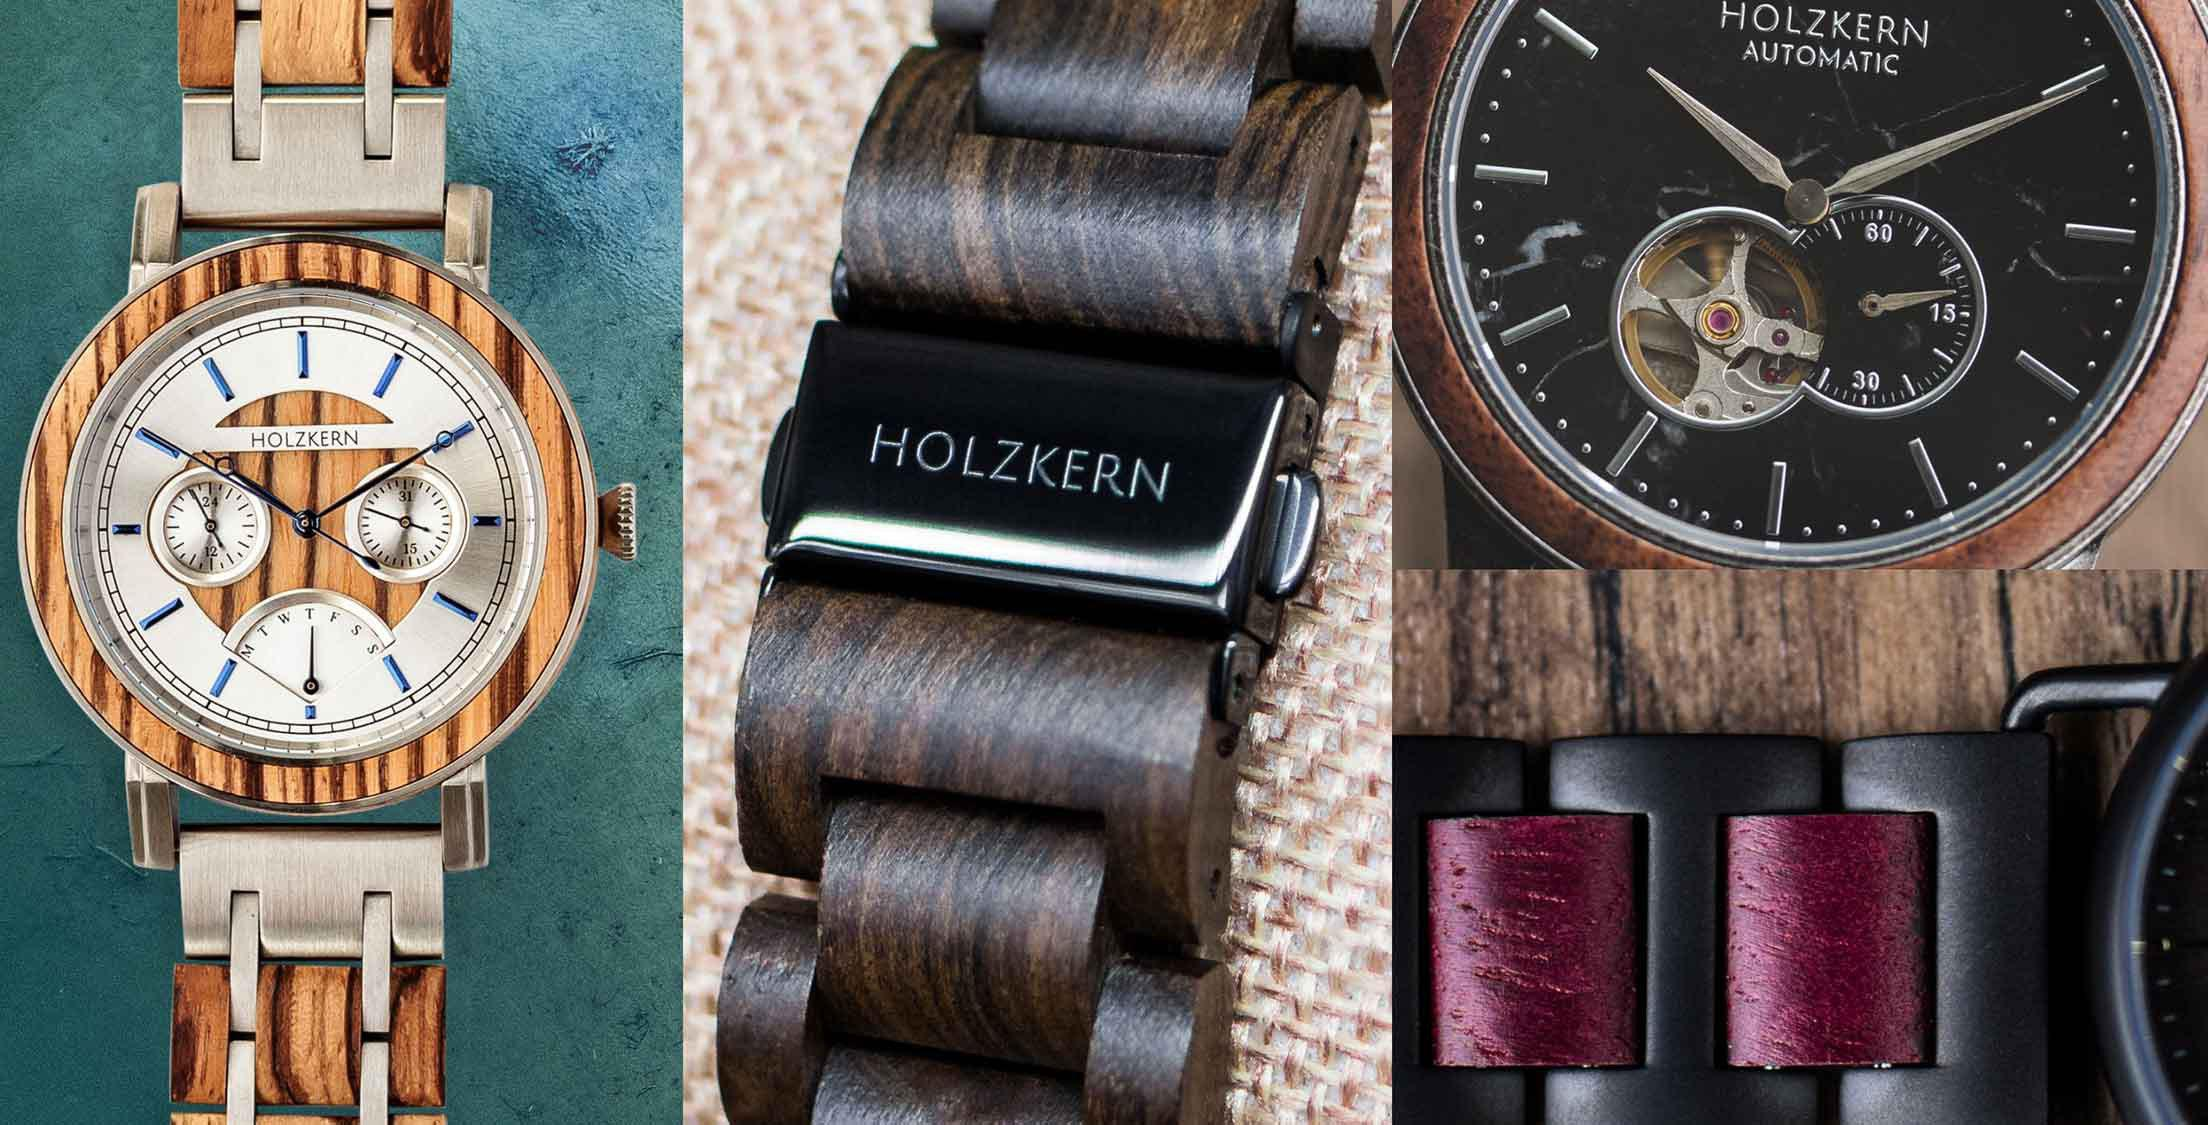 7 reasons why Holzkern watches are so special